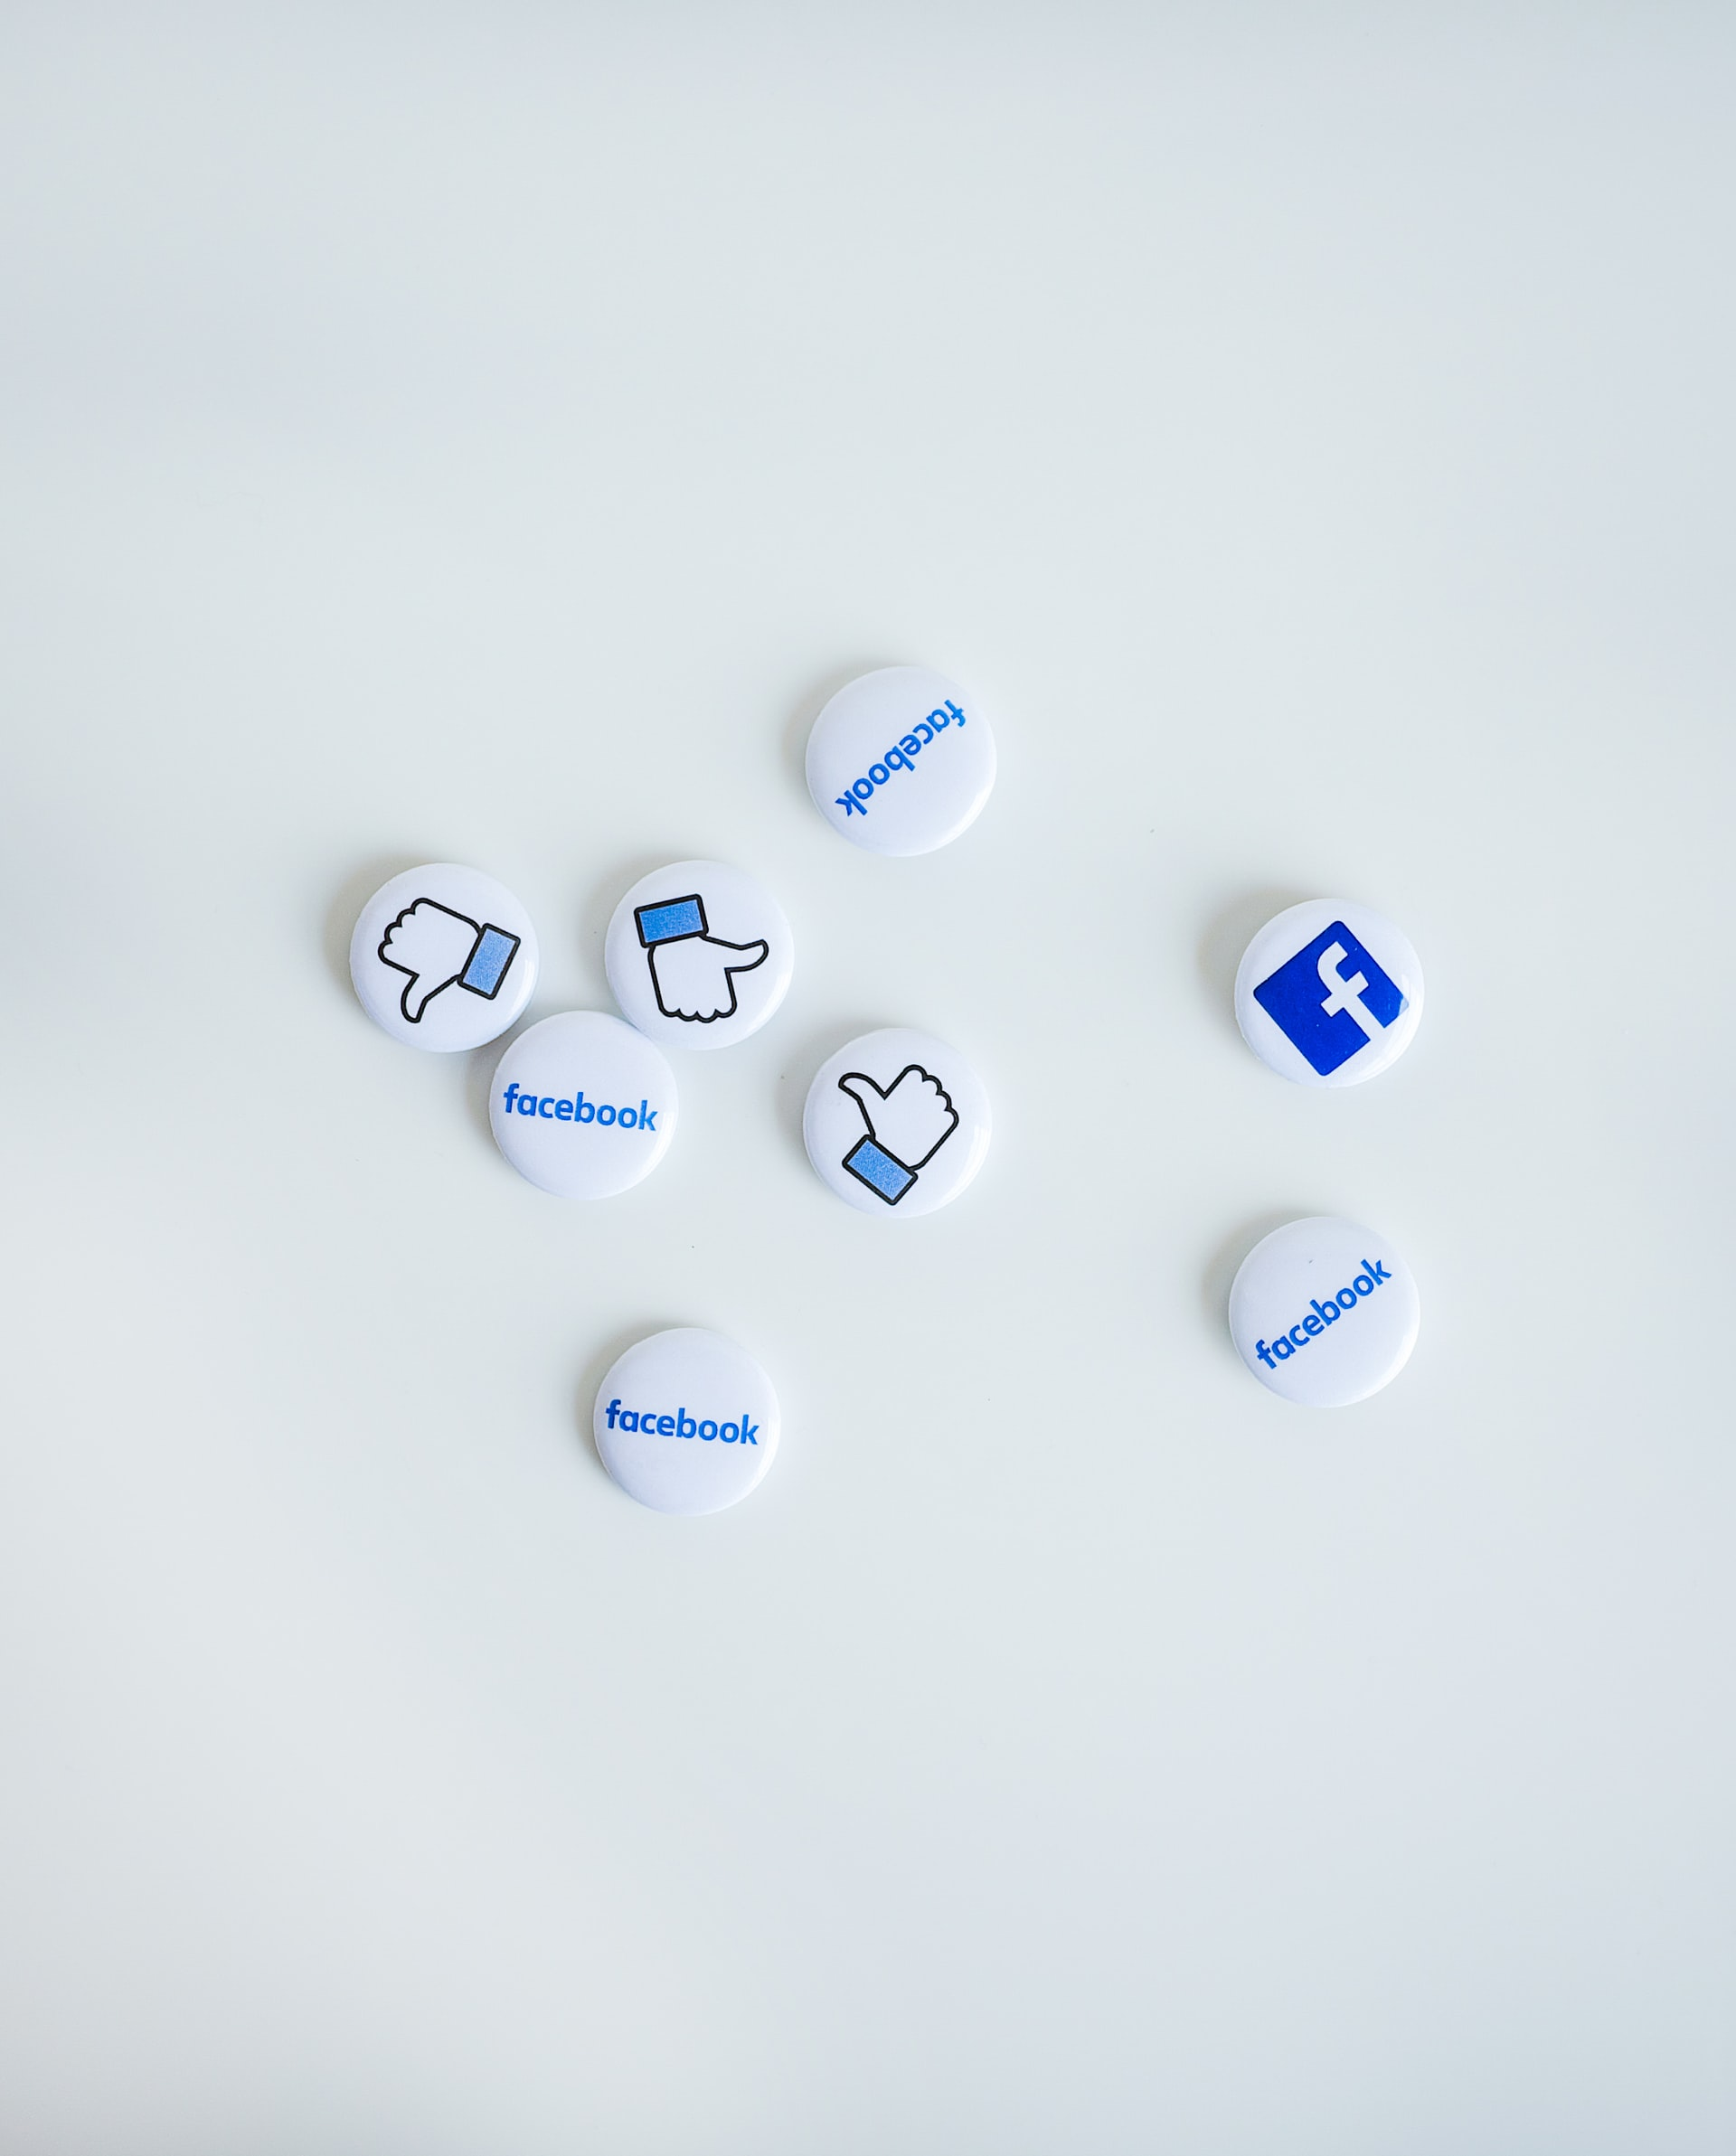 Facebook Grant Programs Small Business Article Image